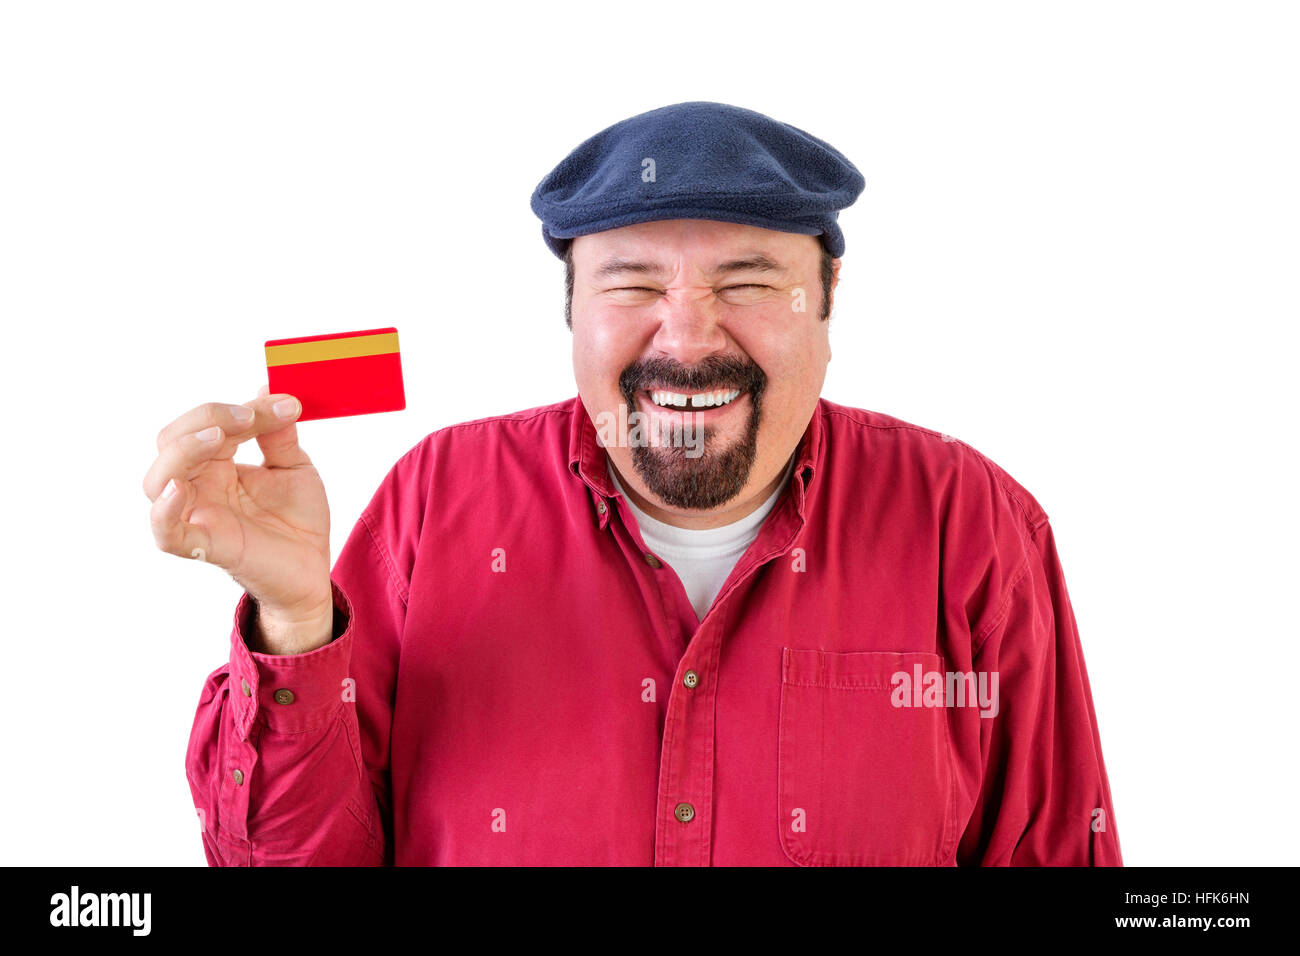 Gleeful middle-aged man with a goatee wearing a red shirt and cap holding up a bank card with a beaming smile and - Stock Image